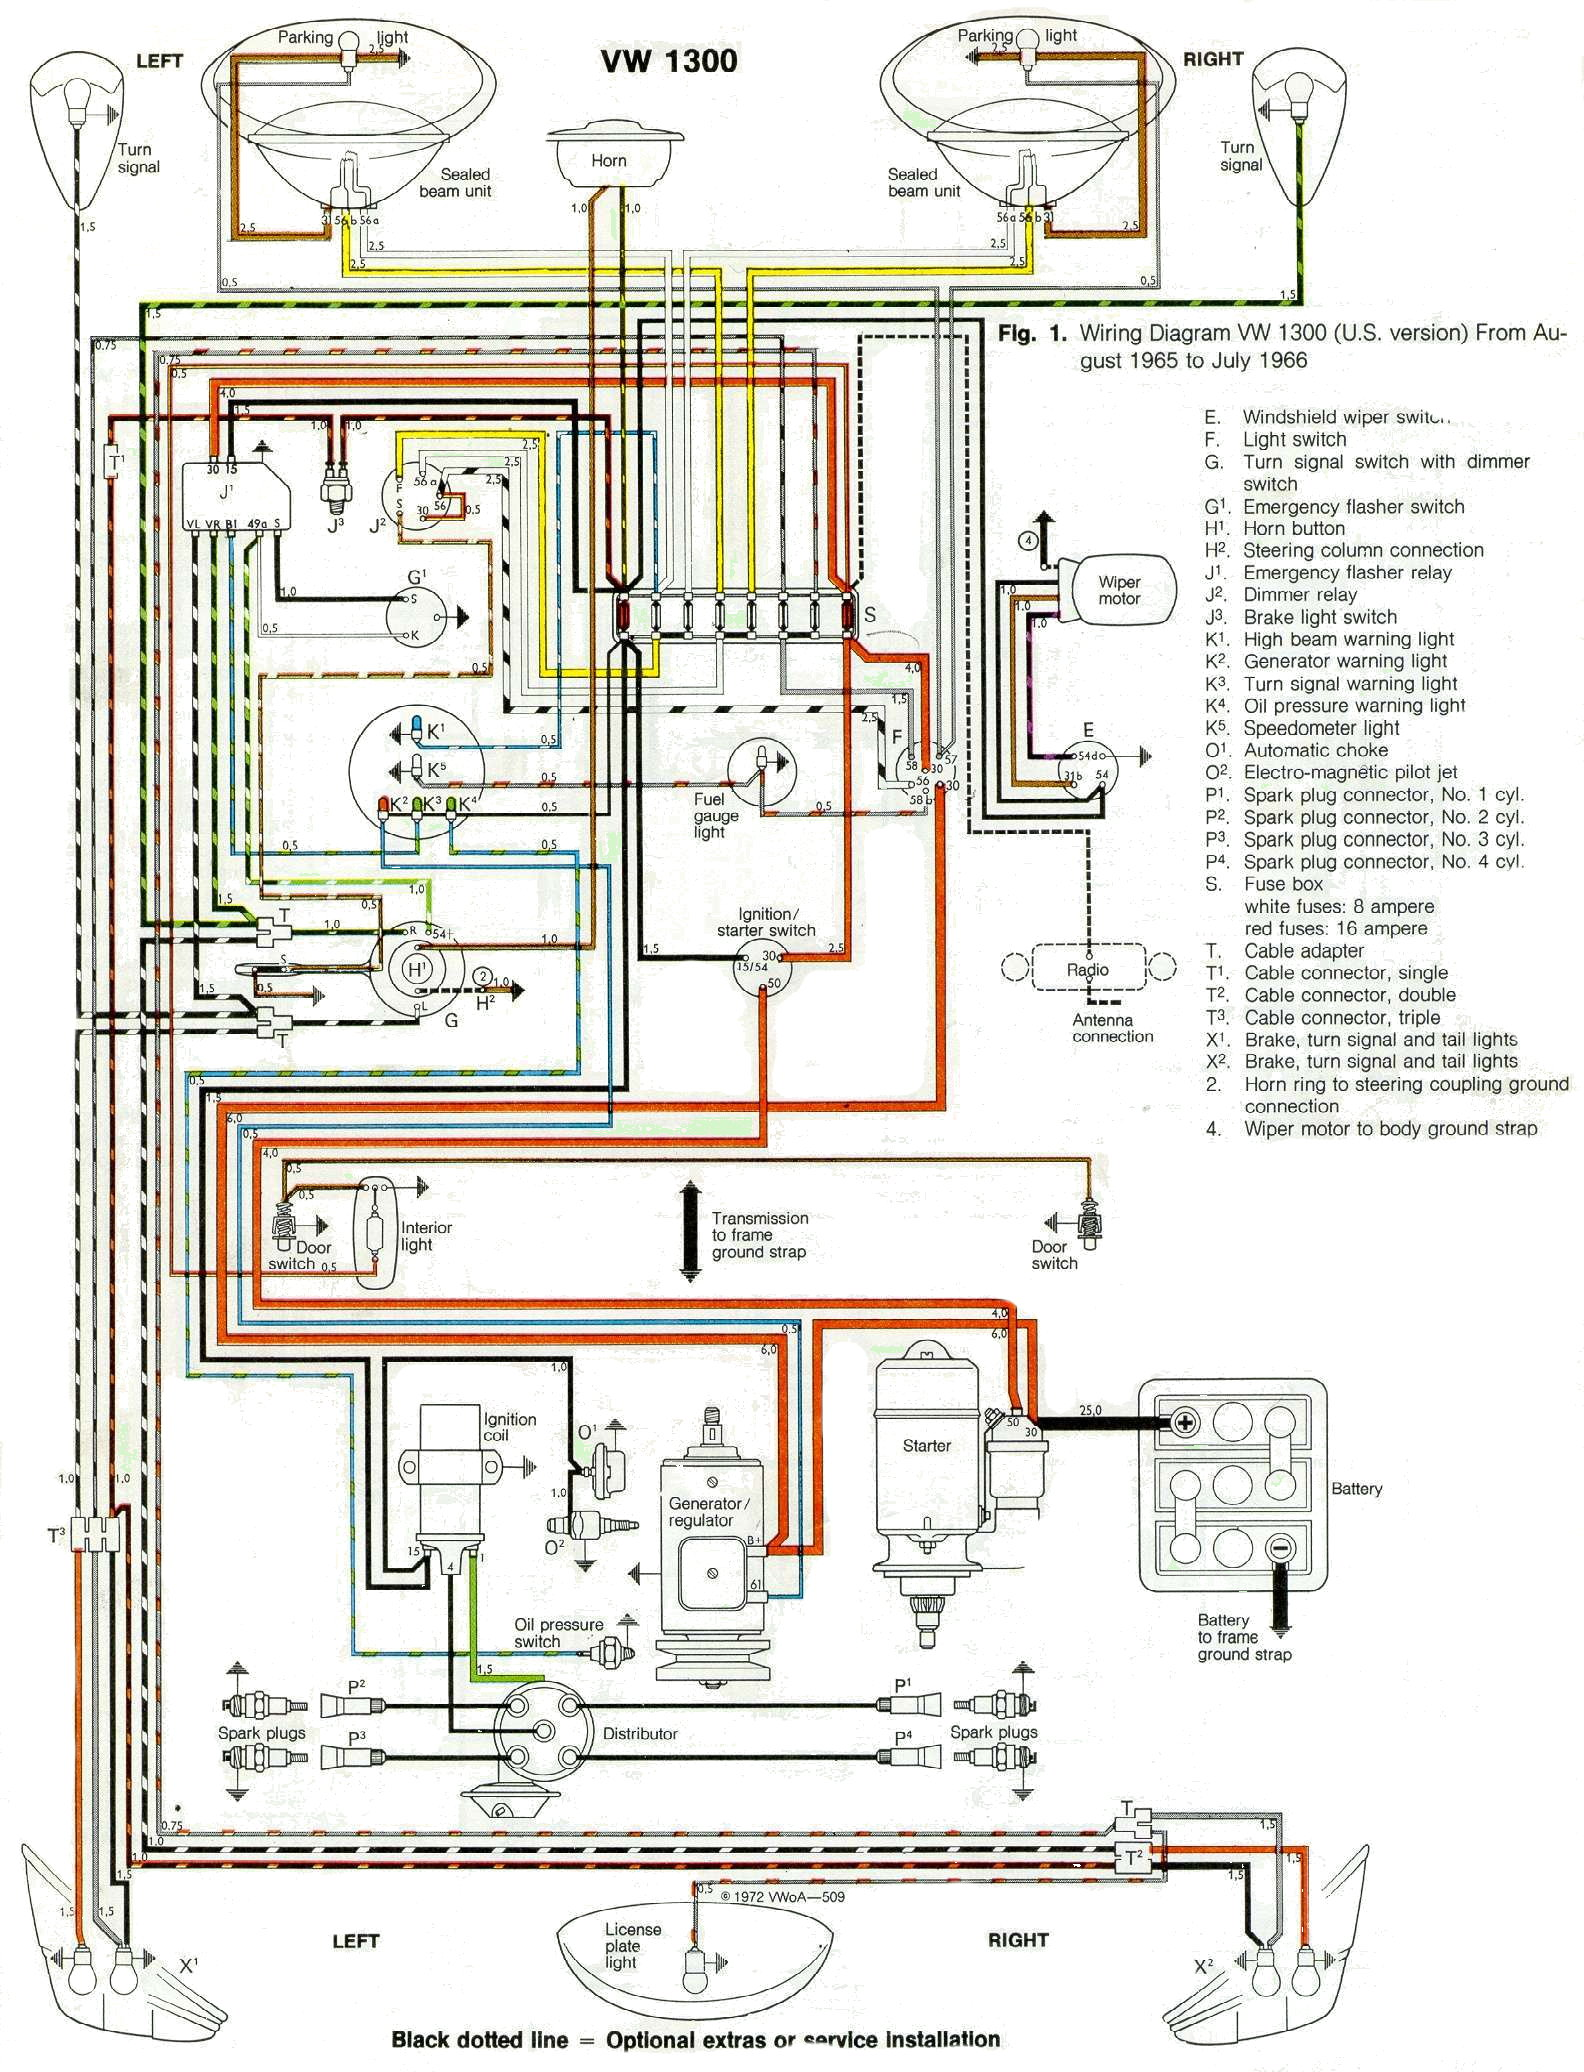 1966 Wiring 1966 wiring diagram